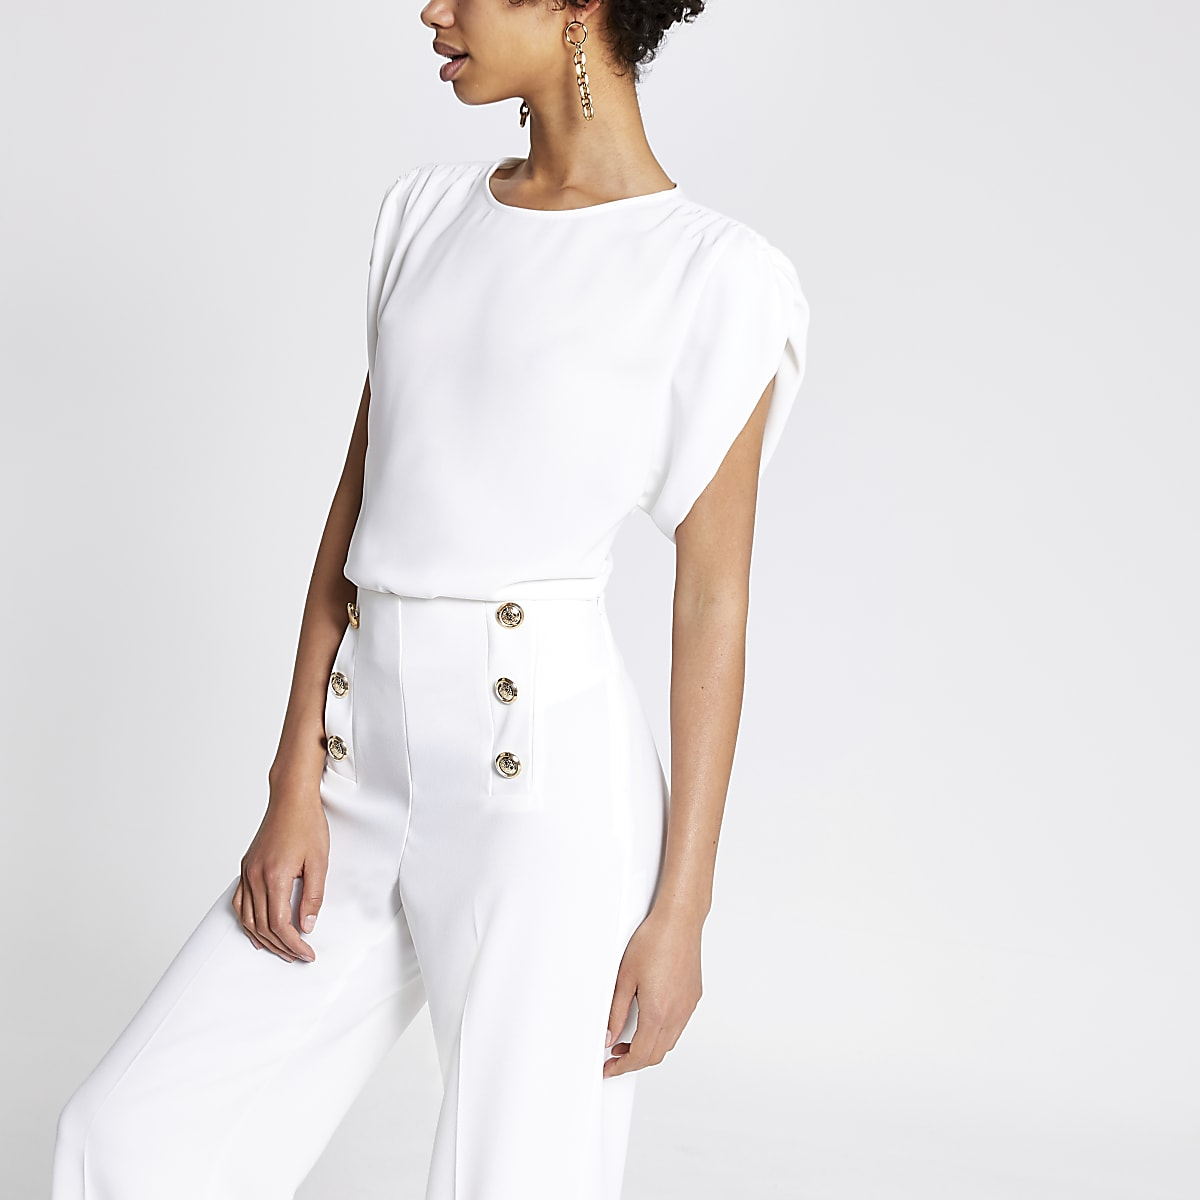 White ruched sleeve top